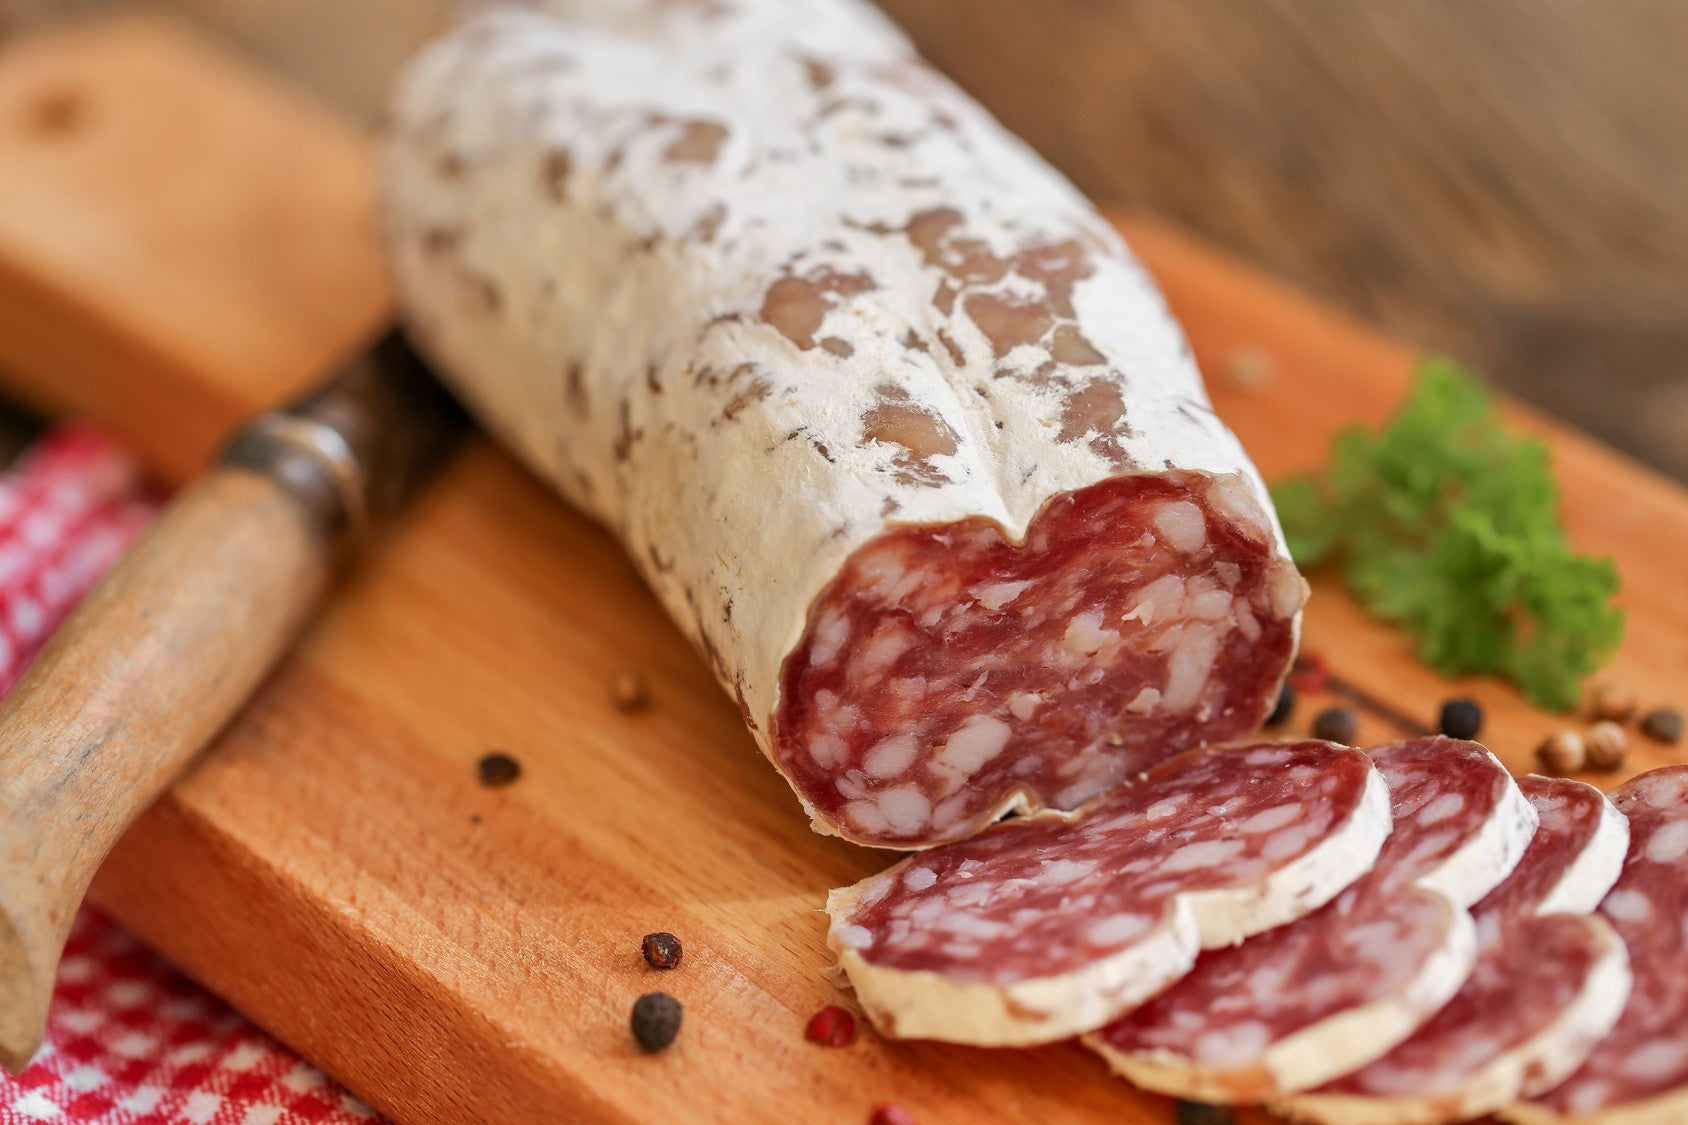 saucisson sec artisanal pur porc de 250g marguerite a paris. Black Bedroom Furniture Sets. Home Design Ideas